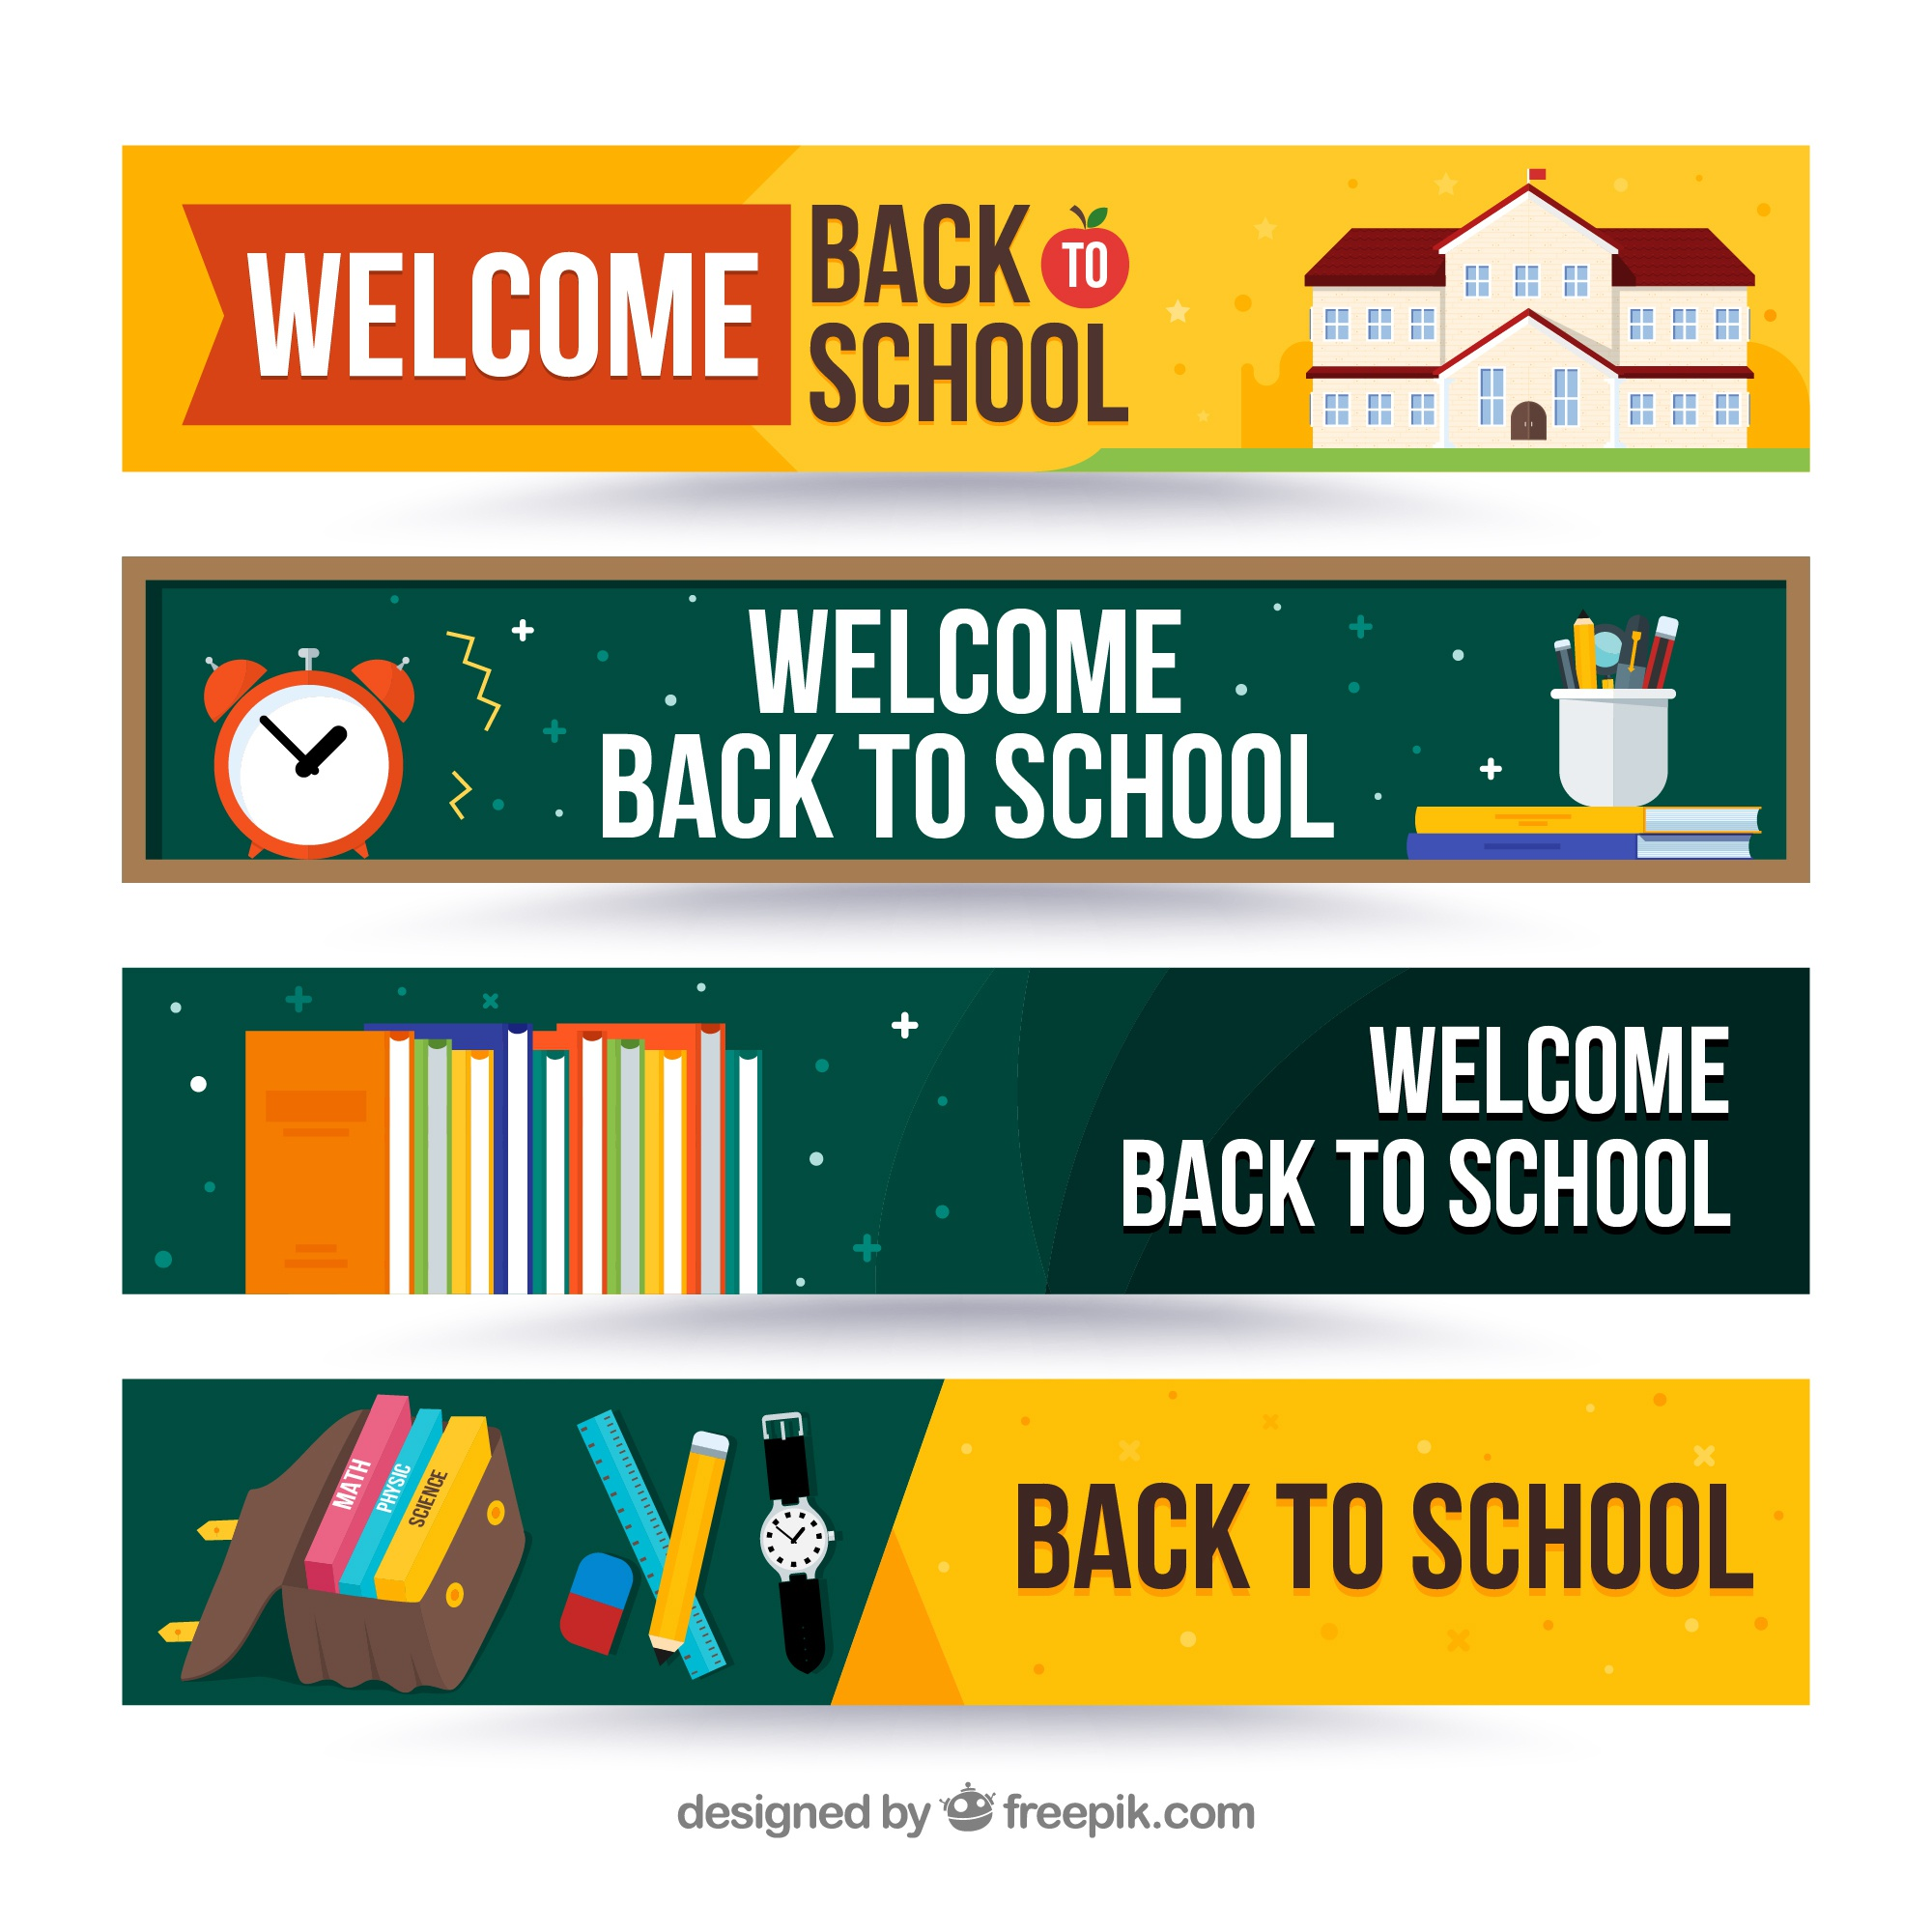 Back to school banners with elements